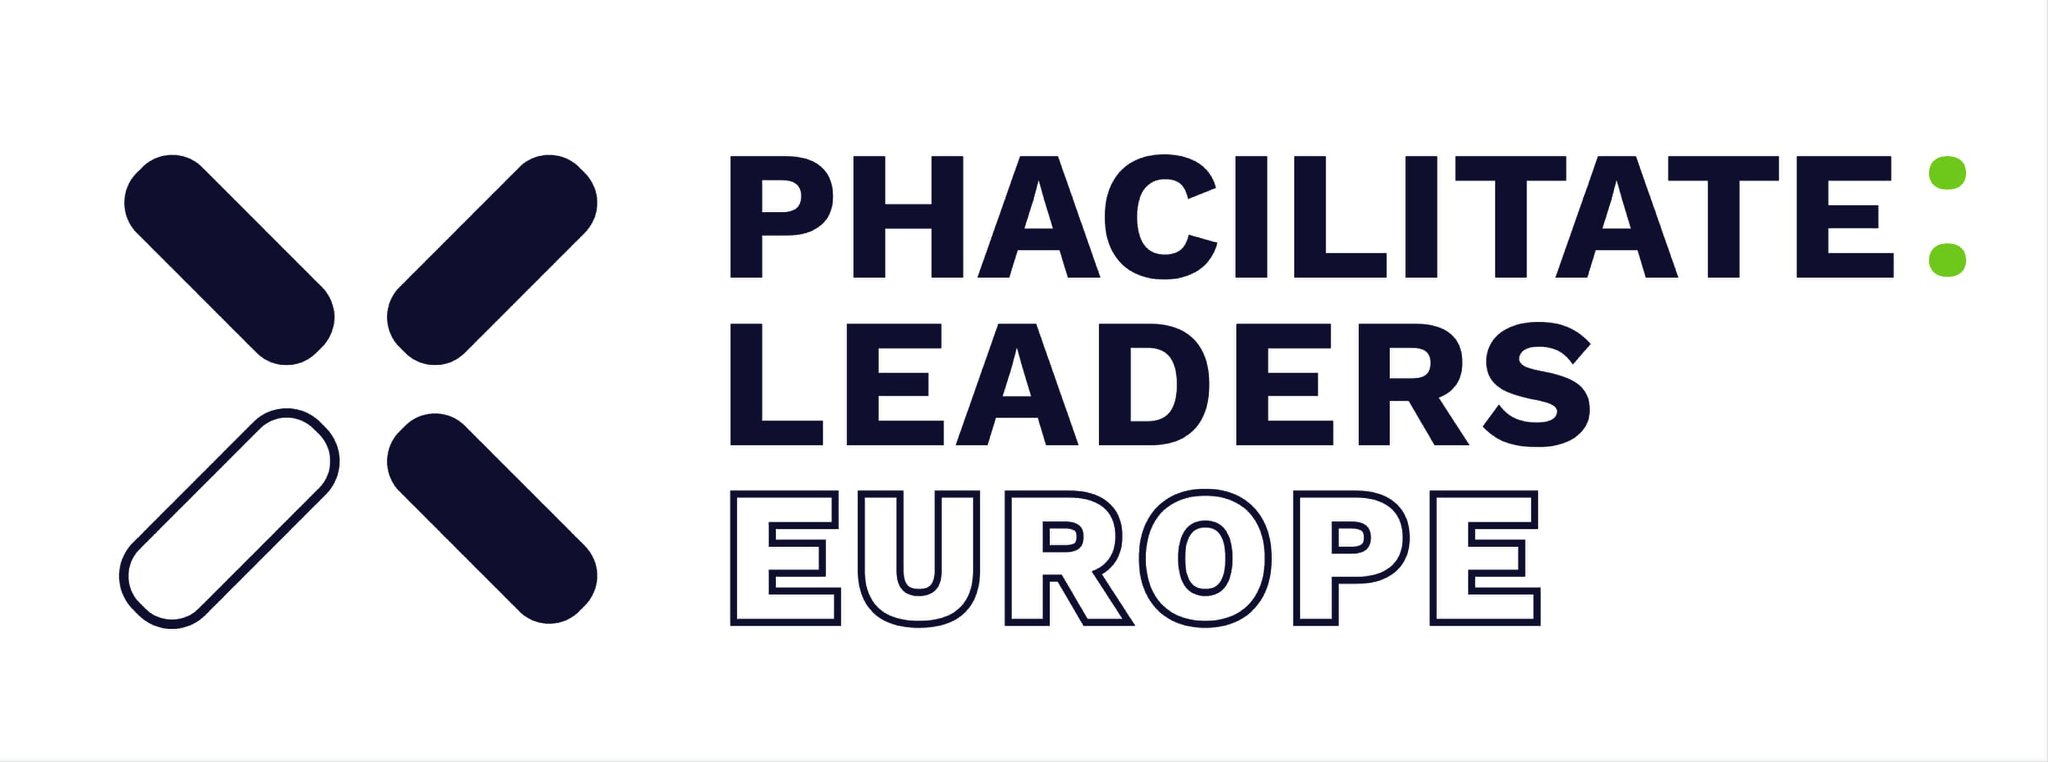 phacilitate leaders europe.png